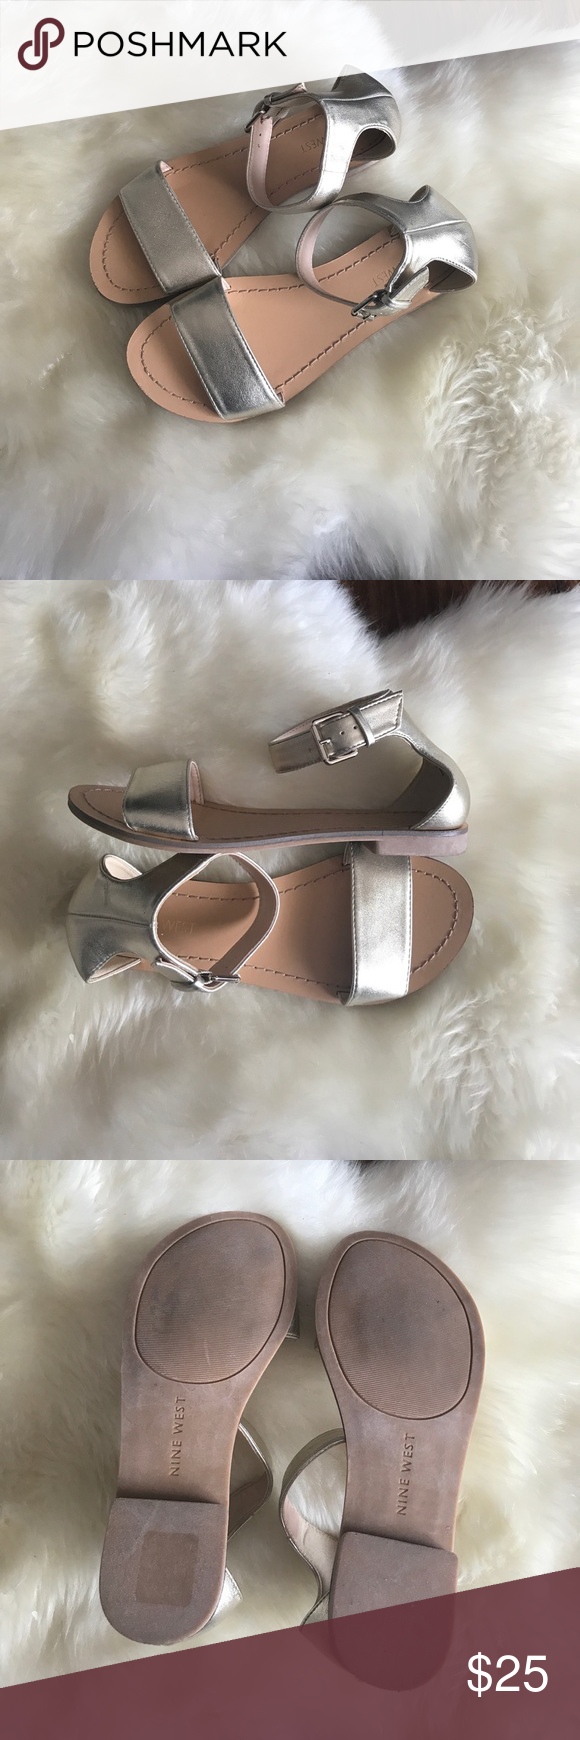 Nine West Like new. Ankle strap sandals